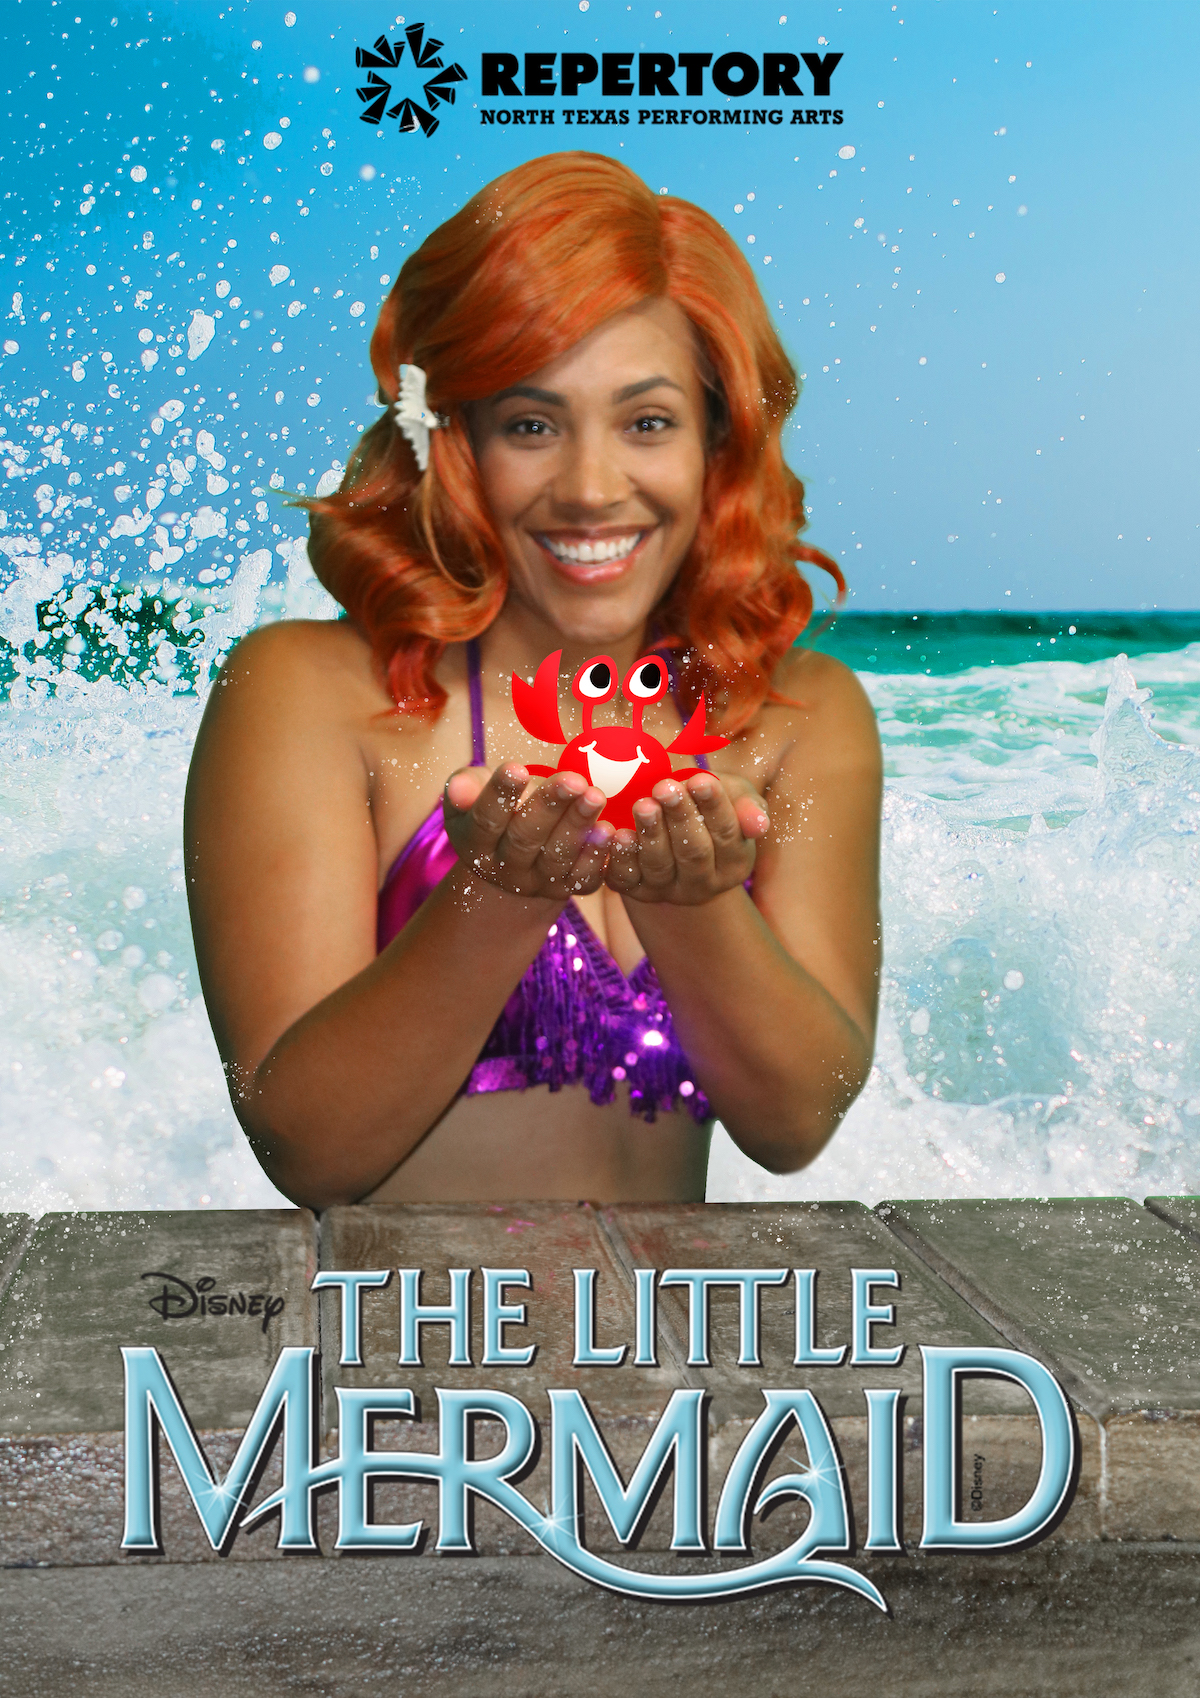 NTPA Repertory present The Little Mermaid - actress playing ariel holds a cartoon crab